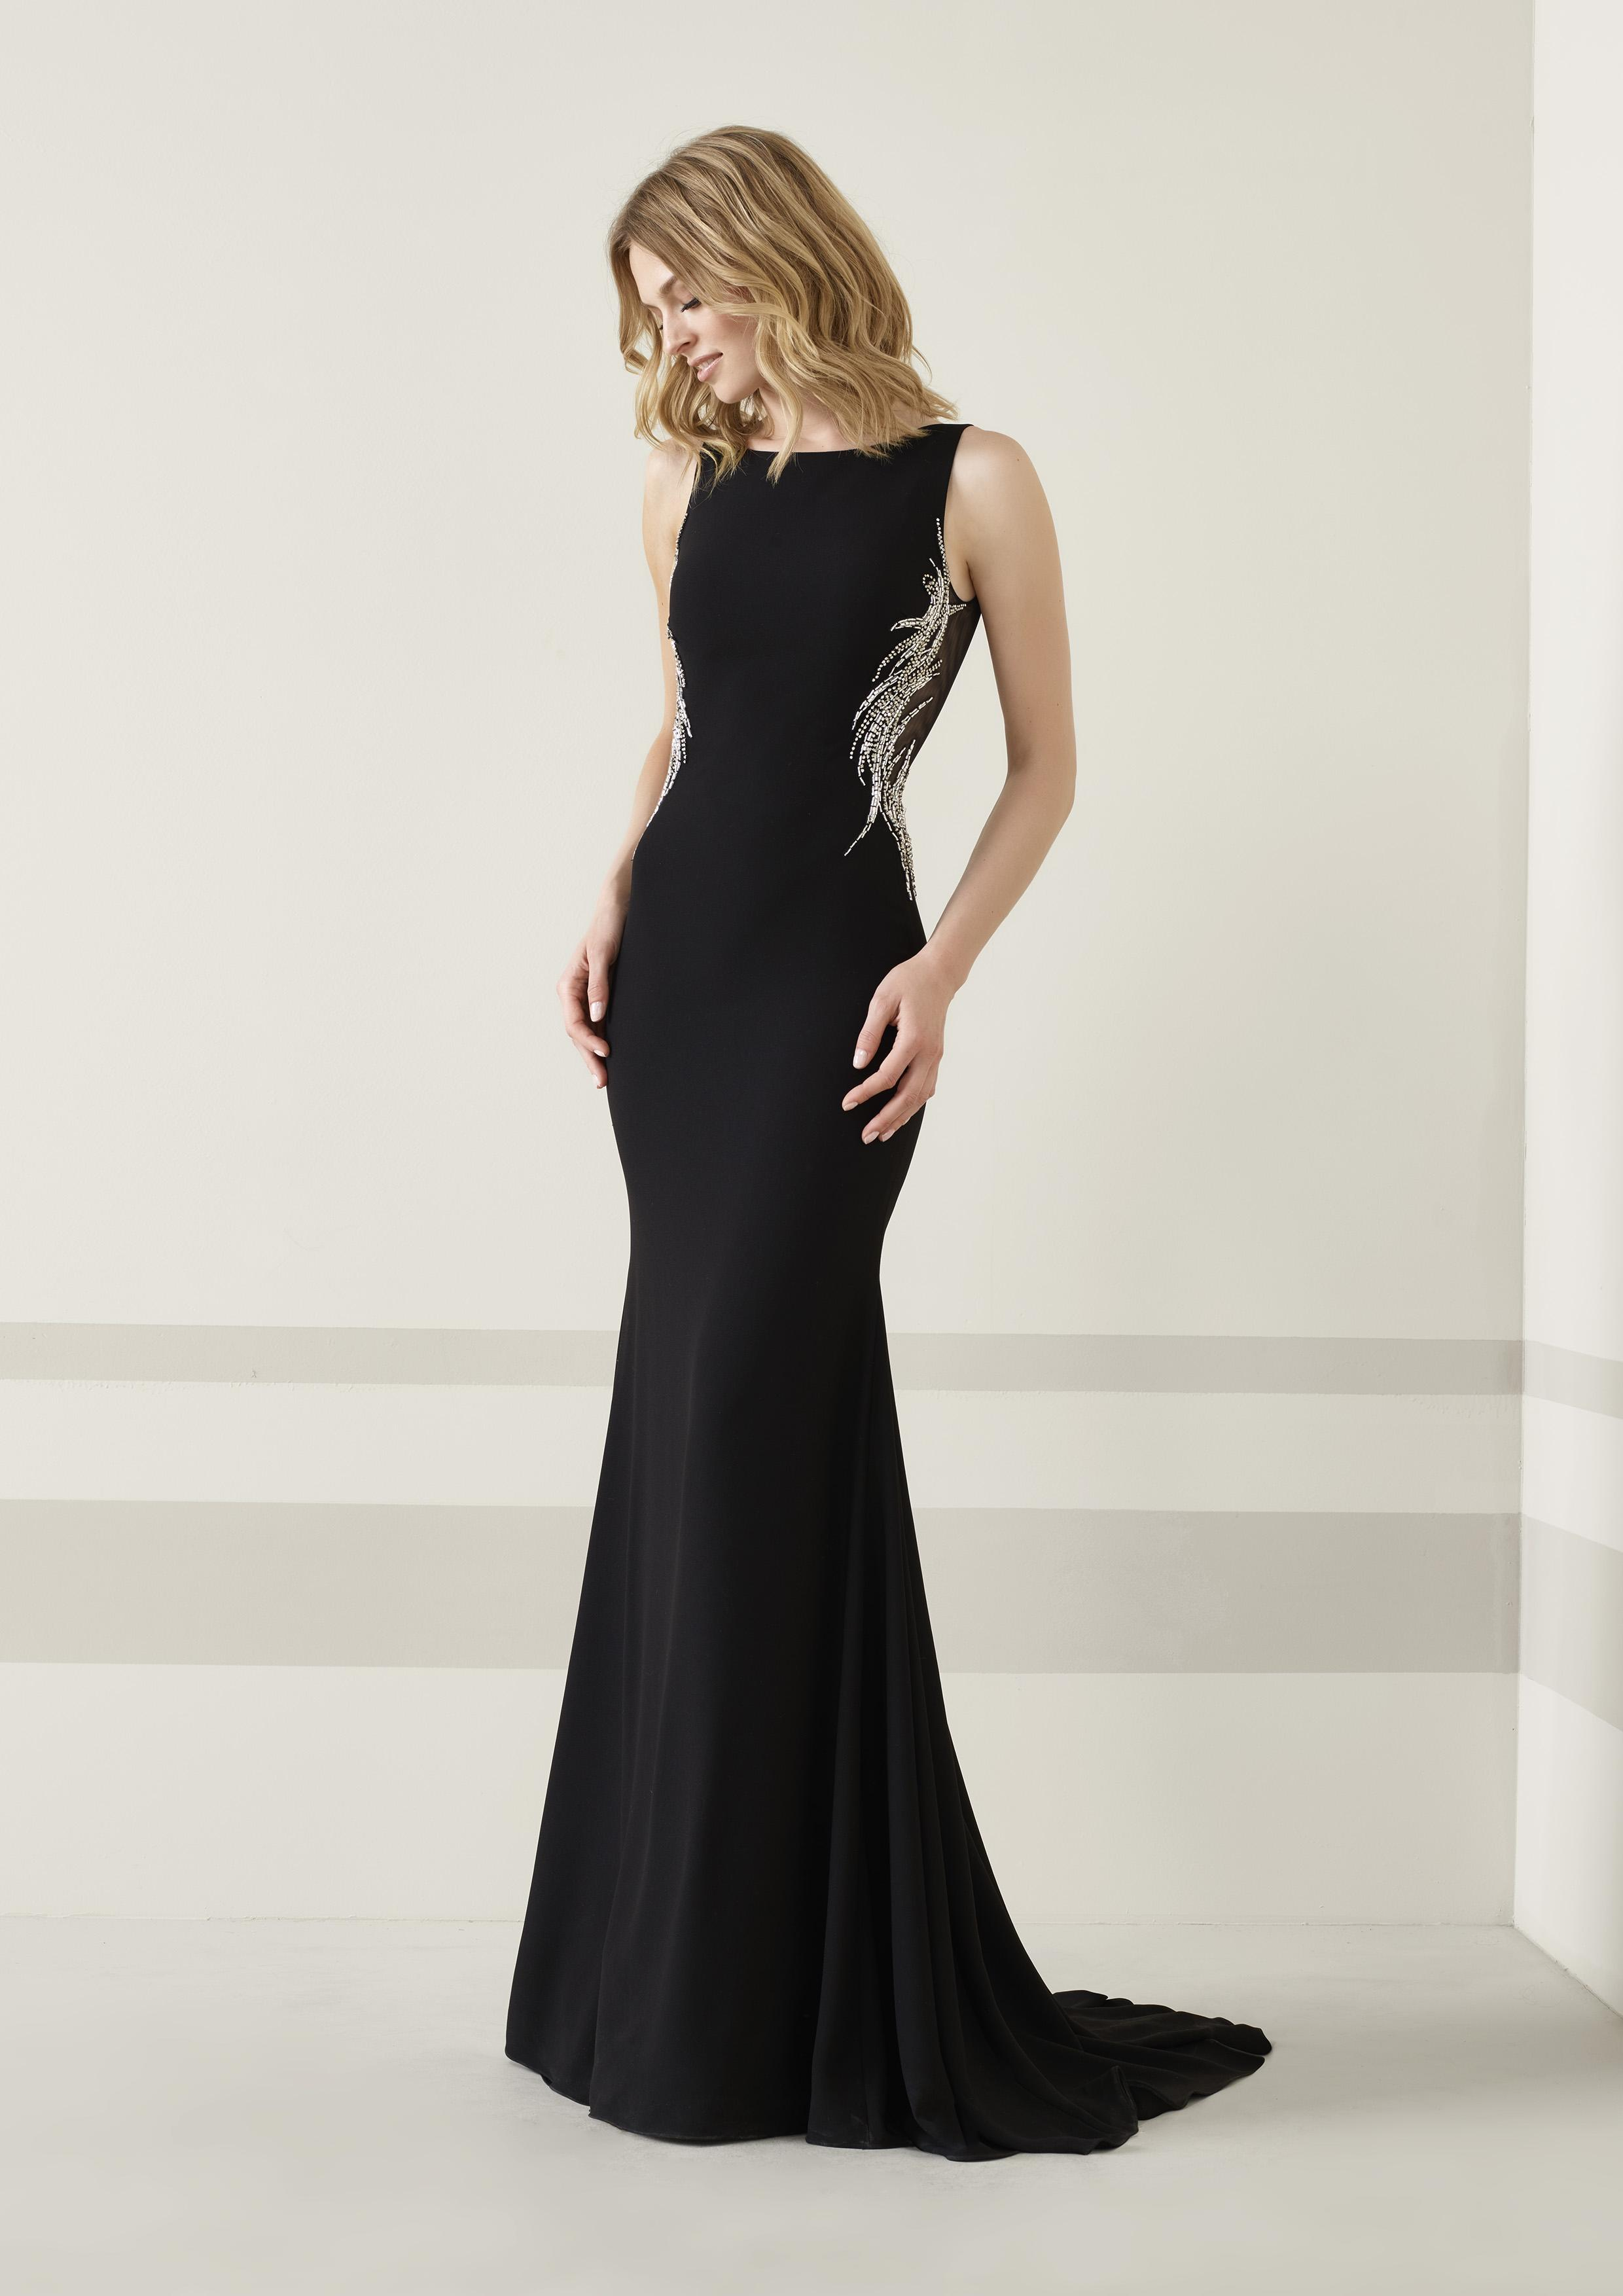 Pronovias The Party Edit Avondkleding Teron#21570